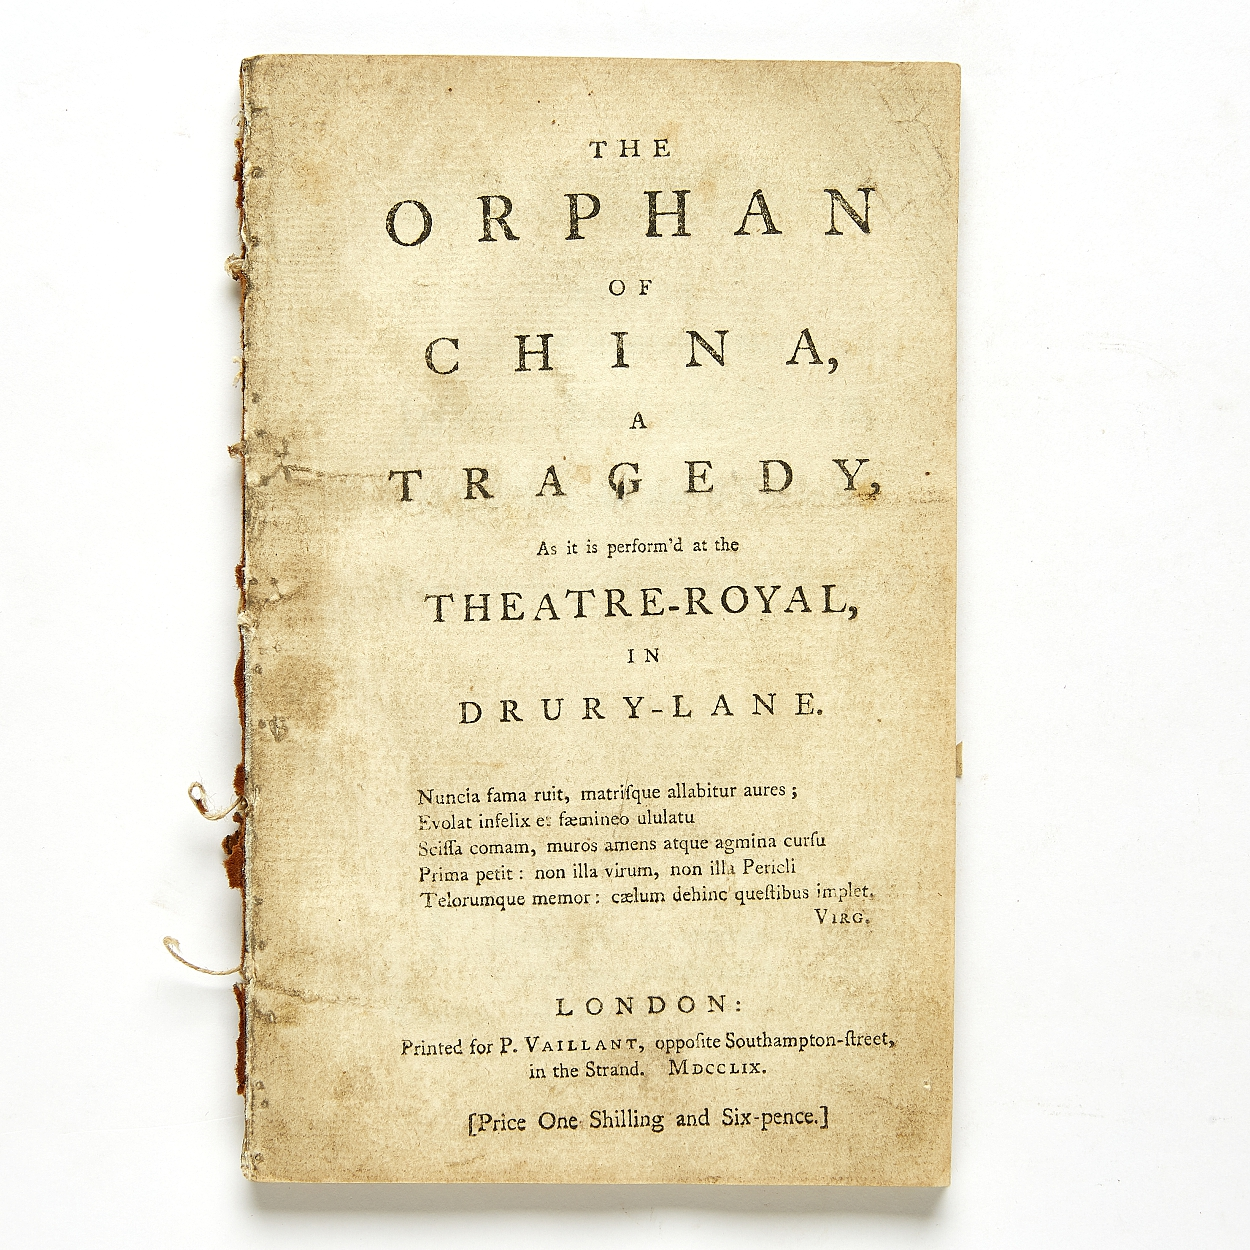 Murphy's play The Orphan of China... 1759